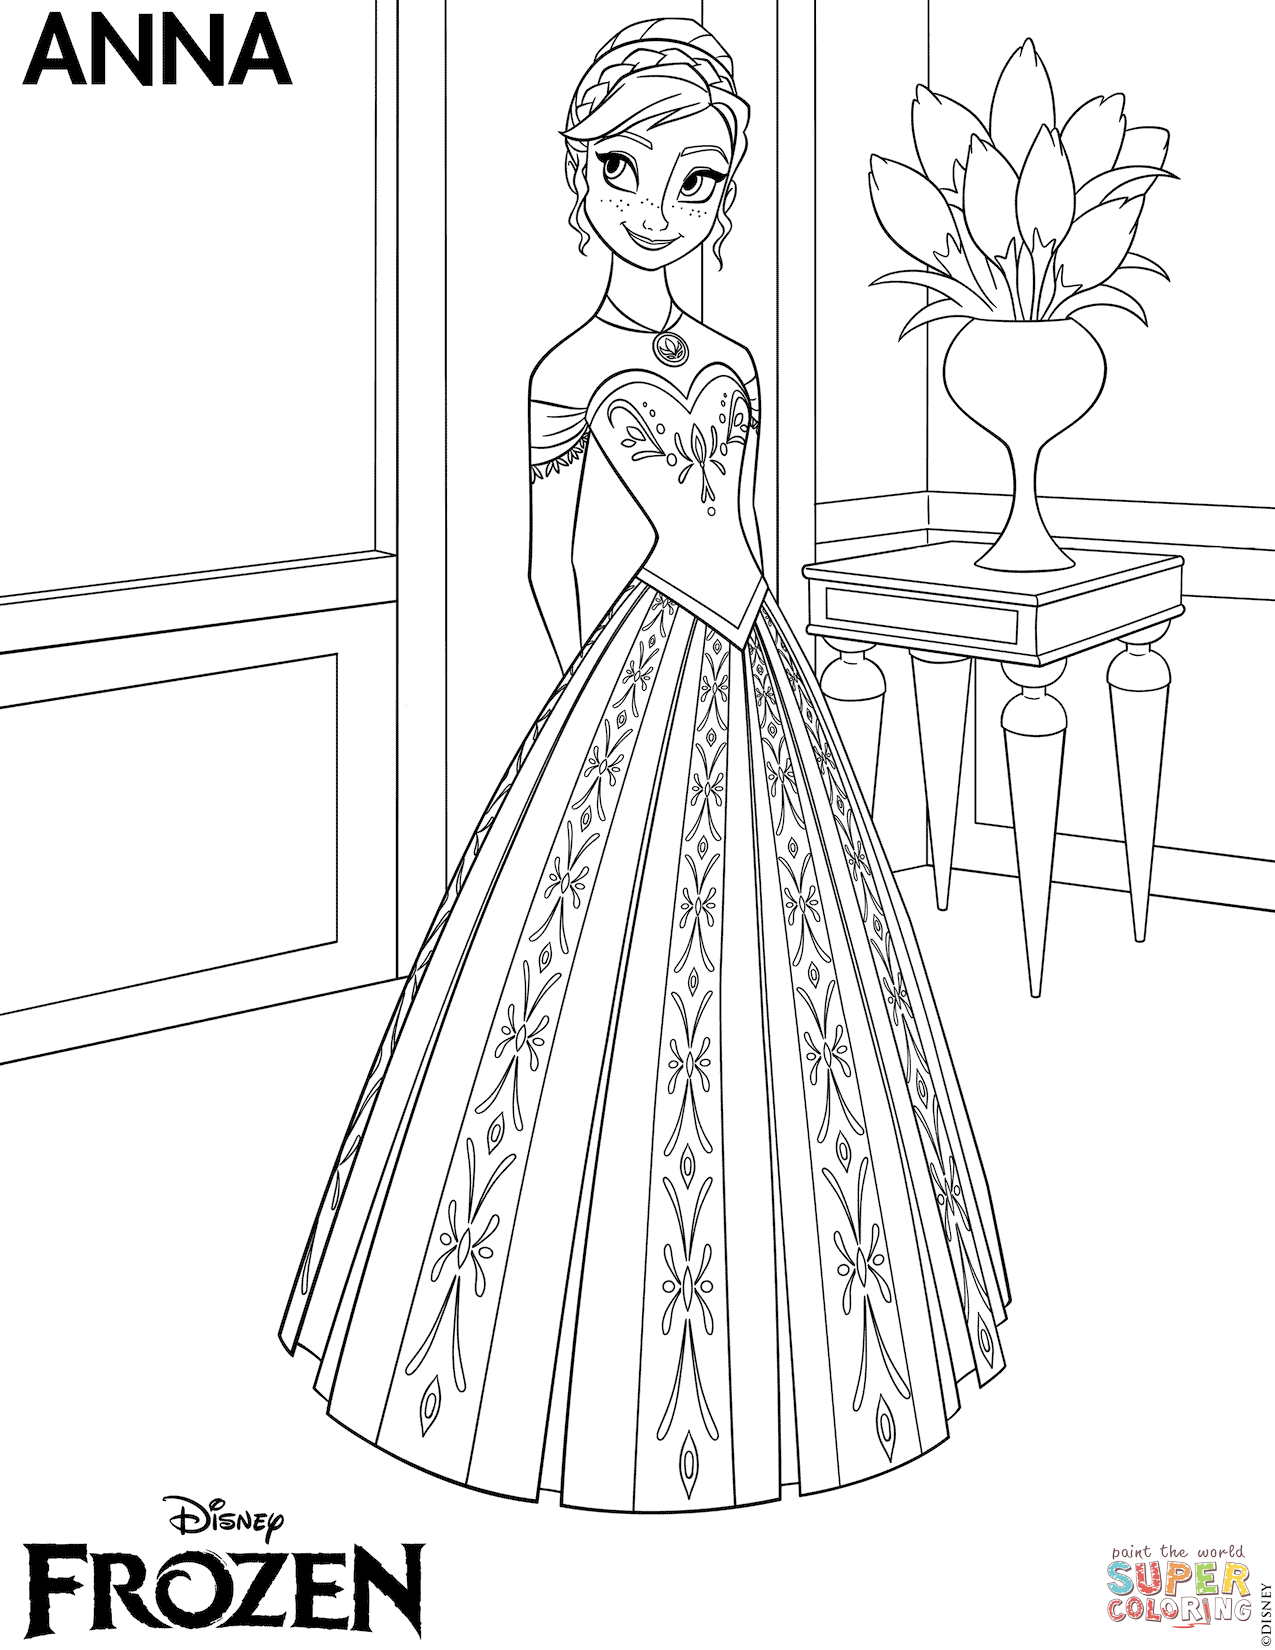 Frozen (Movie) coloring #6, Download drawings